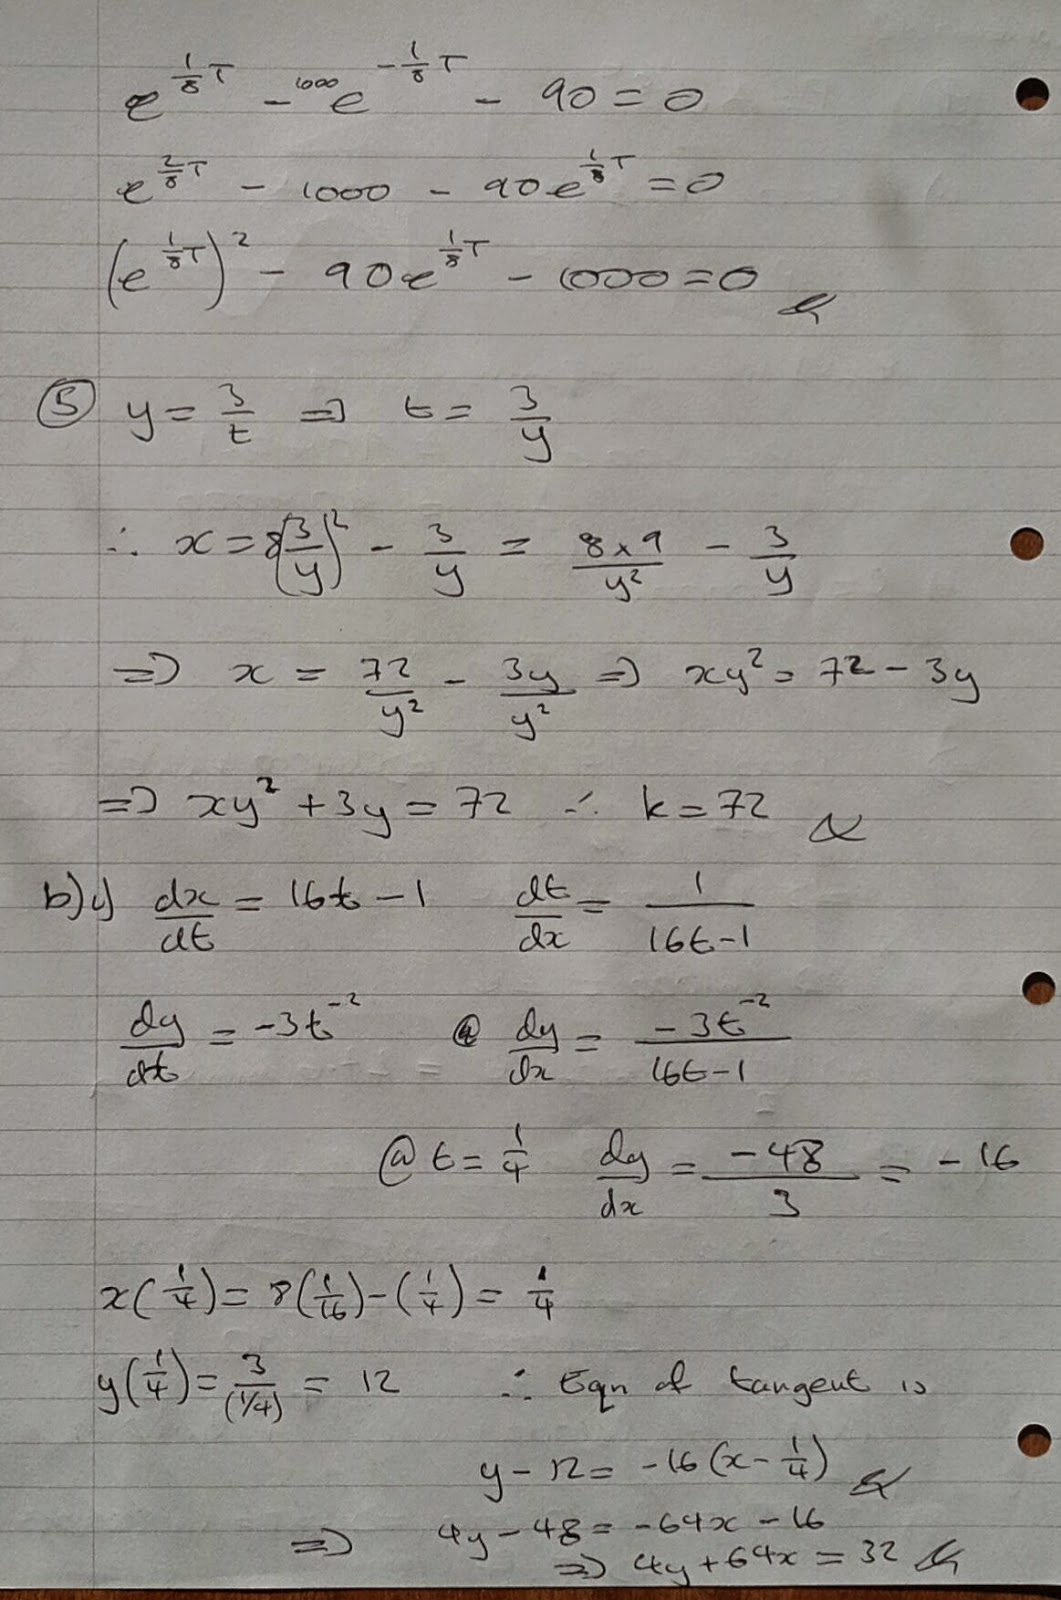 A Level Maths Notes: AQA Core 4 Winter 2012 Exam Paper